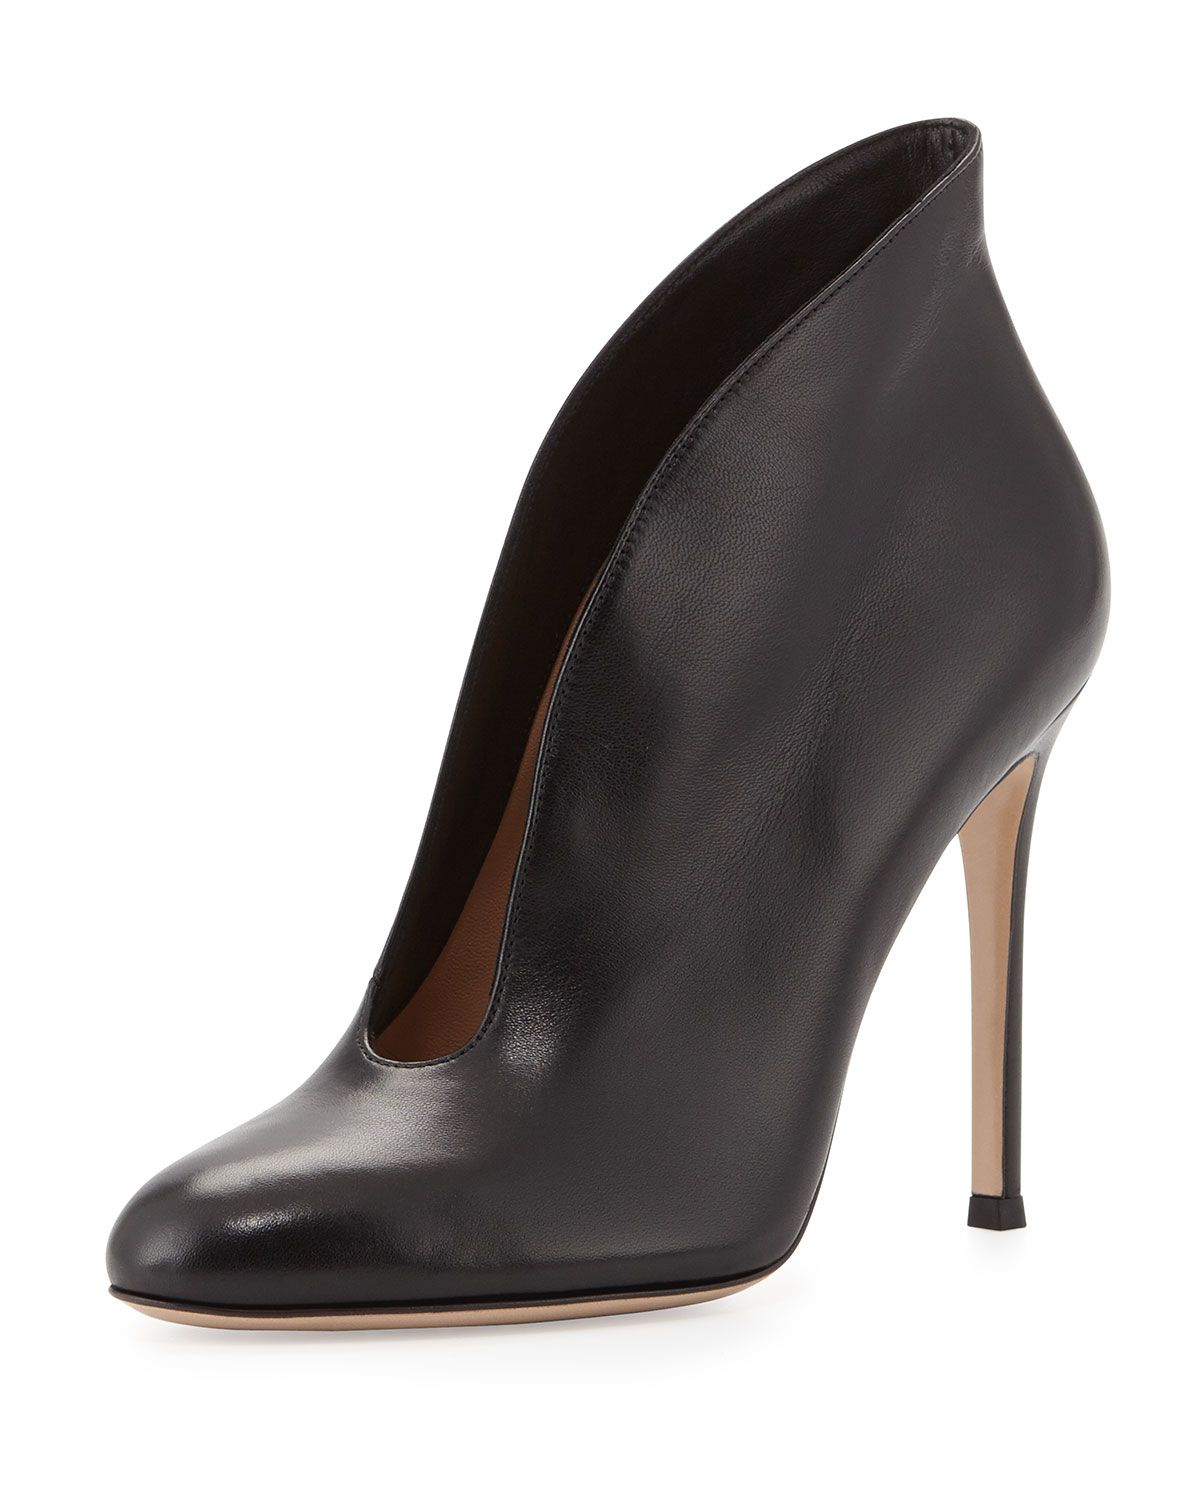 9be57a5dc0 Leather V-Neck Ankle Bootie, Black, Size: 35.0B/5.0B - Gianvito Rossi